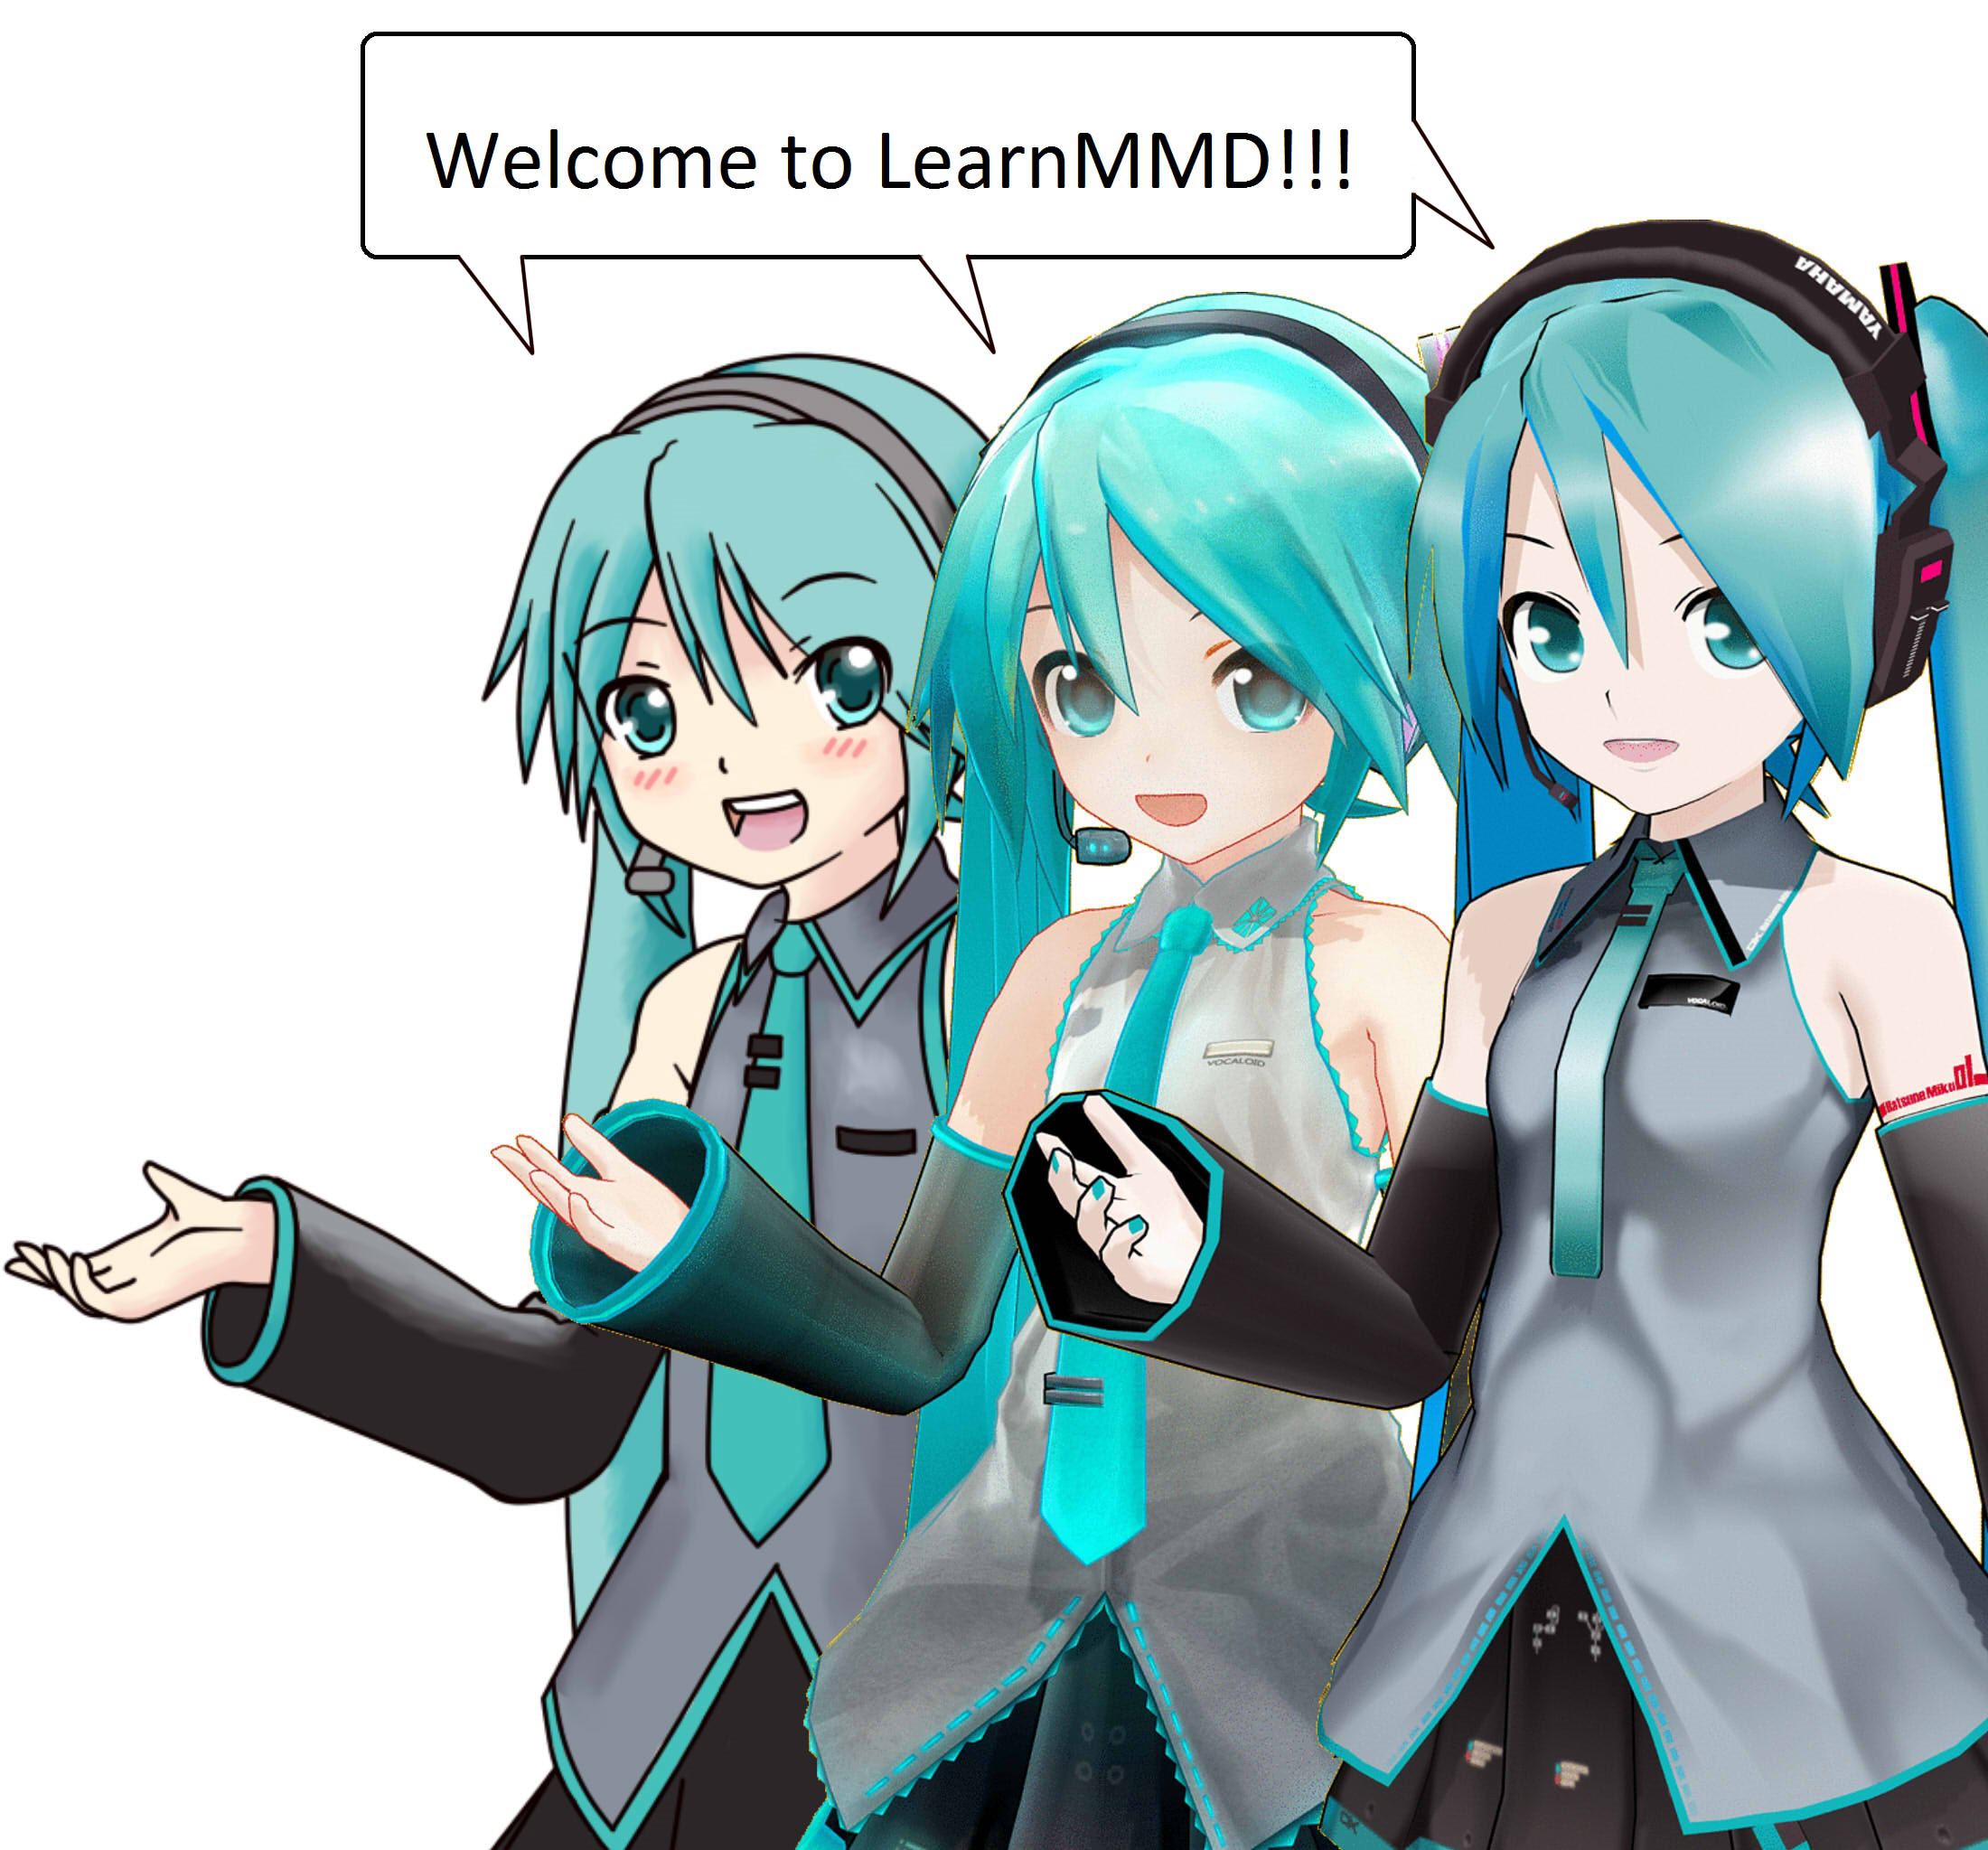 inspired by mmd draw miku blending 2d and 3d art